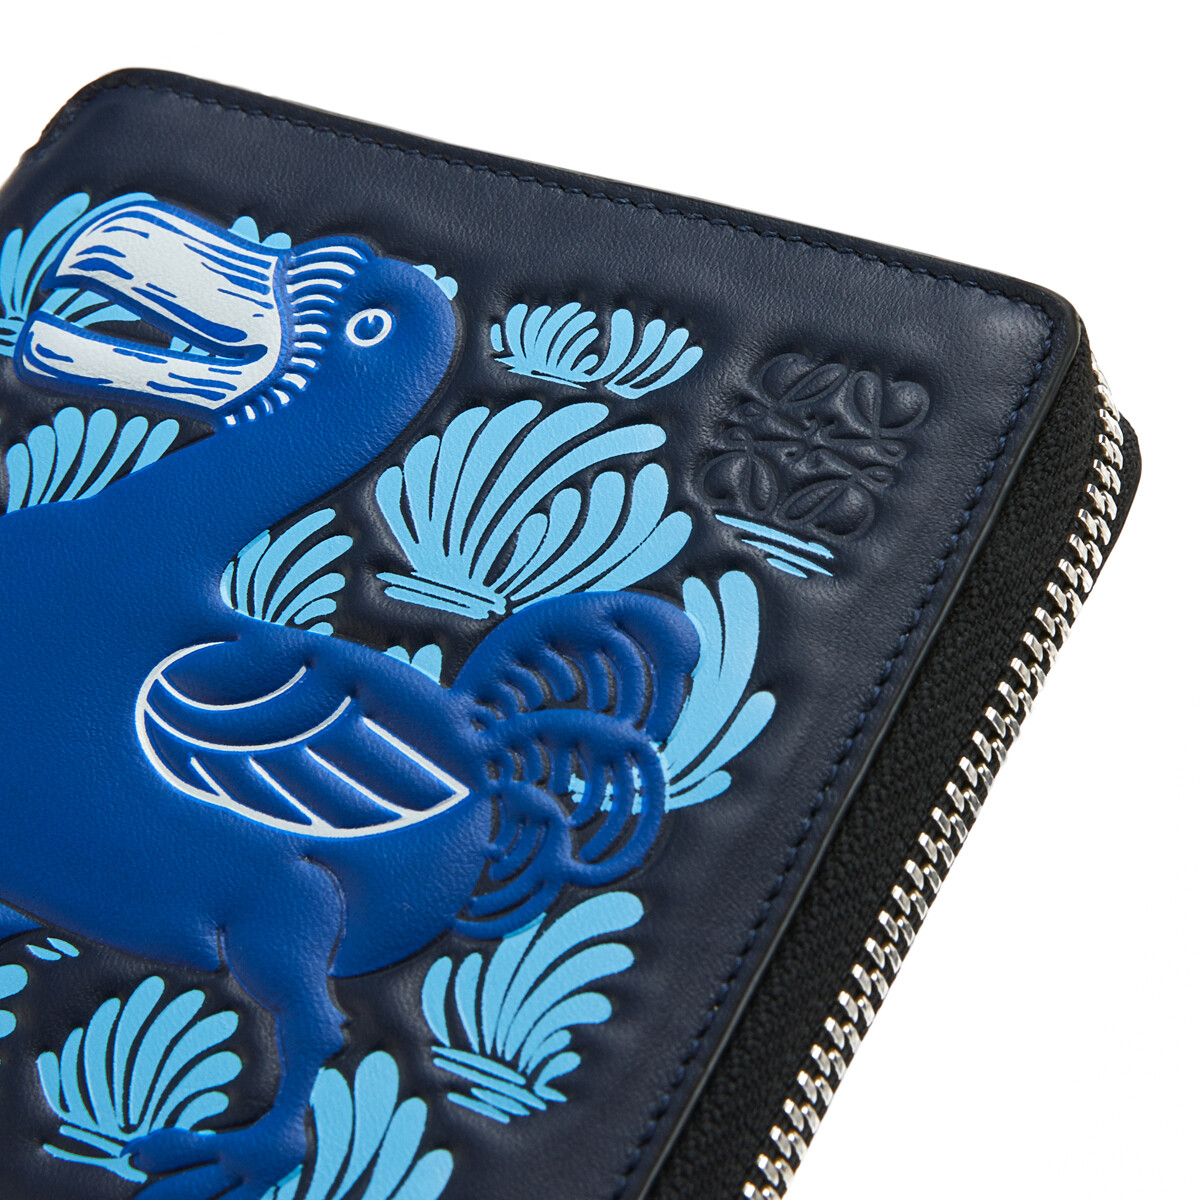 LOEWE Square Zip Wallet Animals Midnight Blue/Electric Blue front